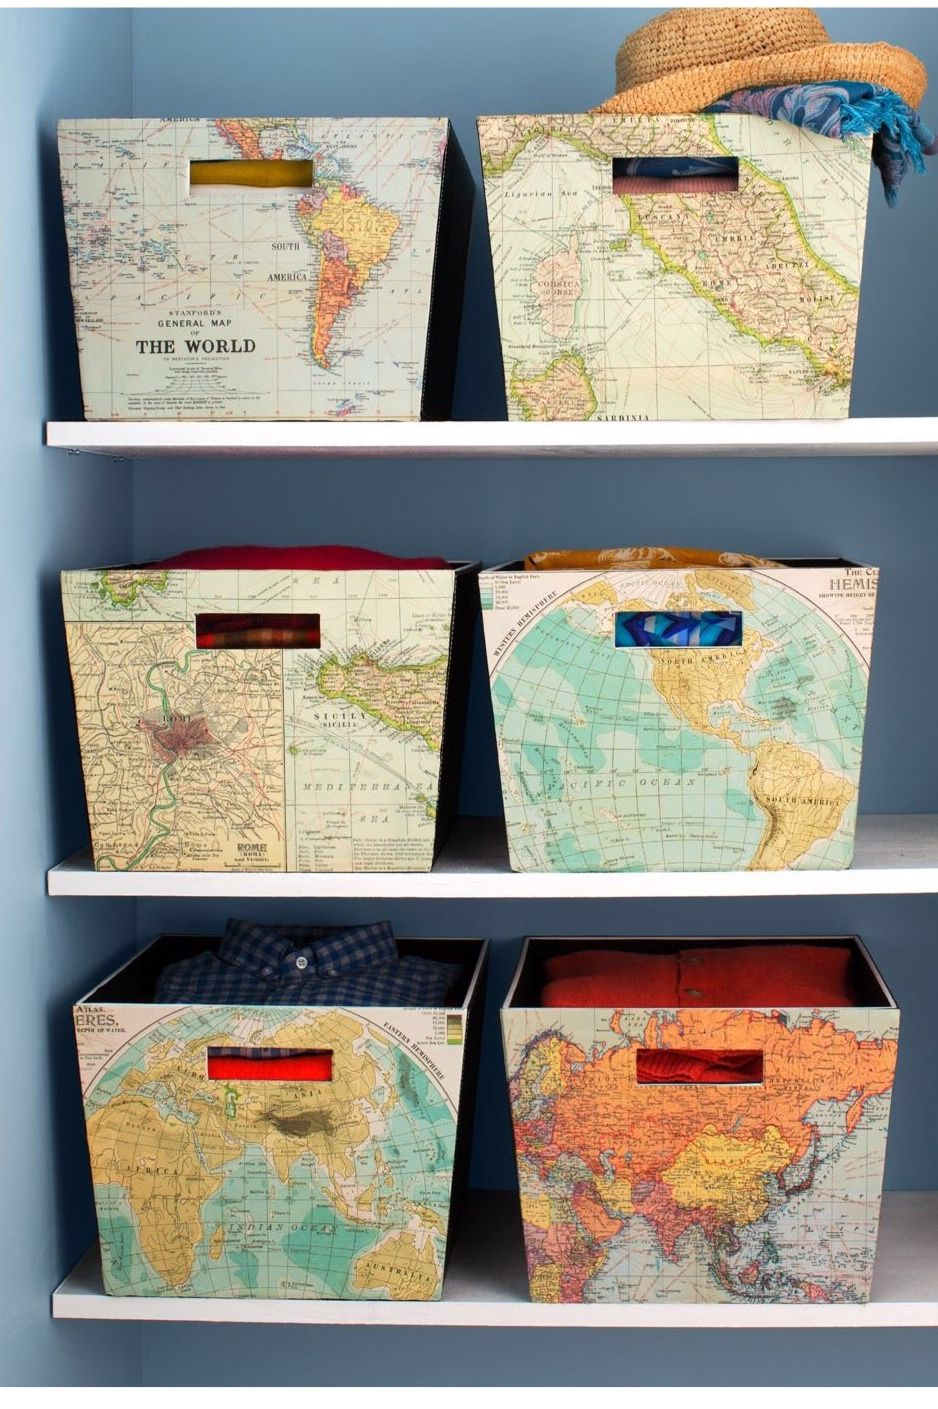 Trip memorabilia books or other paper that fits contents diy off the shelf storage bins using old maps matte finish mod podge glue which becomes transparent when dry a paint brush and a putty knife to smooth out gumiabroncs Image collections